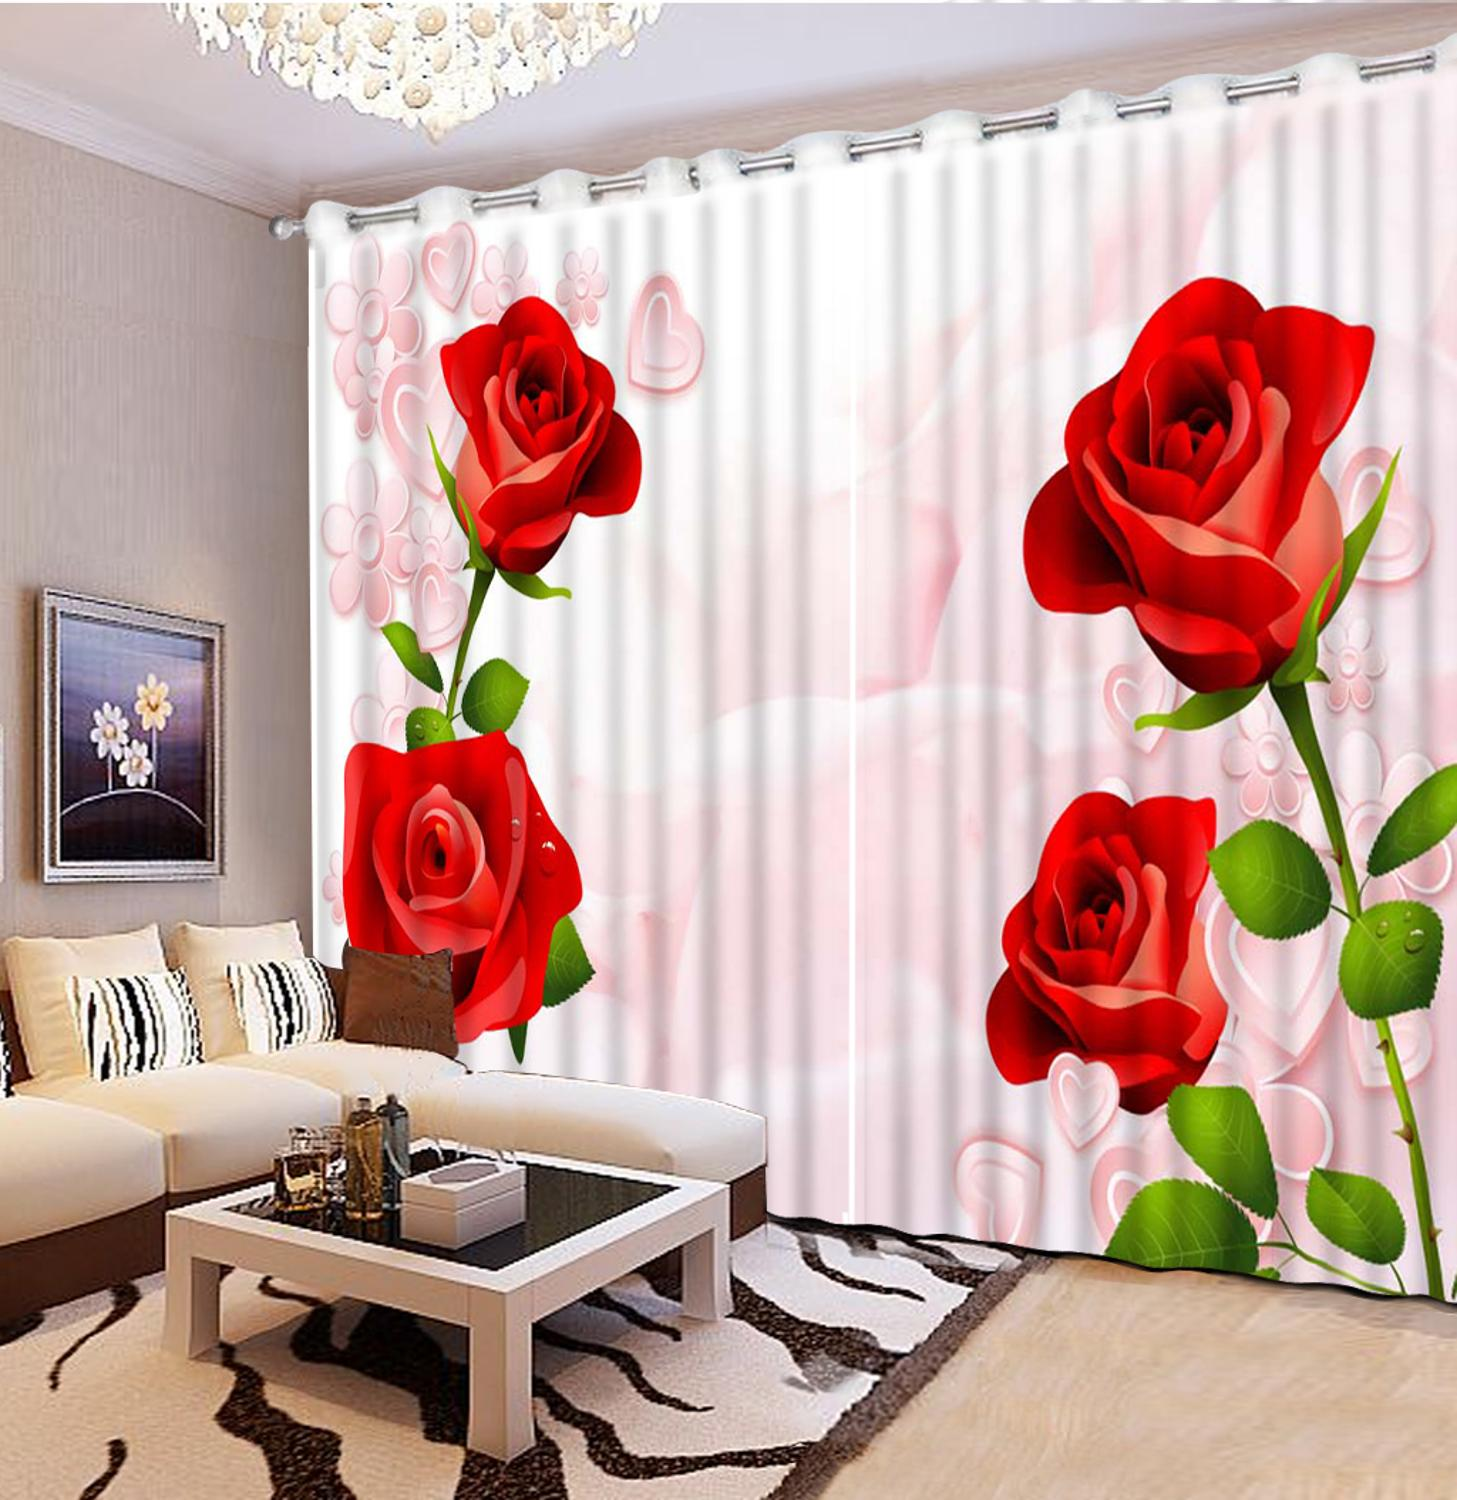 customize european 3D curtains Rose For living room bedrooms japanese window curtainscustomize european 3D curtains Rose For living room bedrooms japanese window curtains